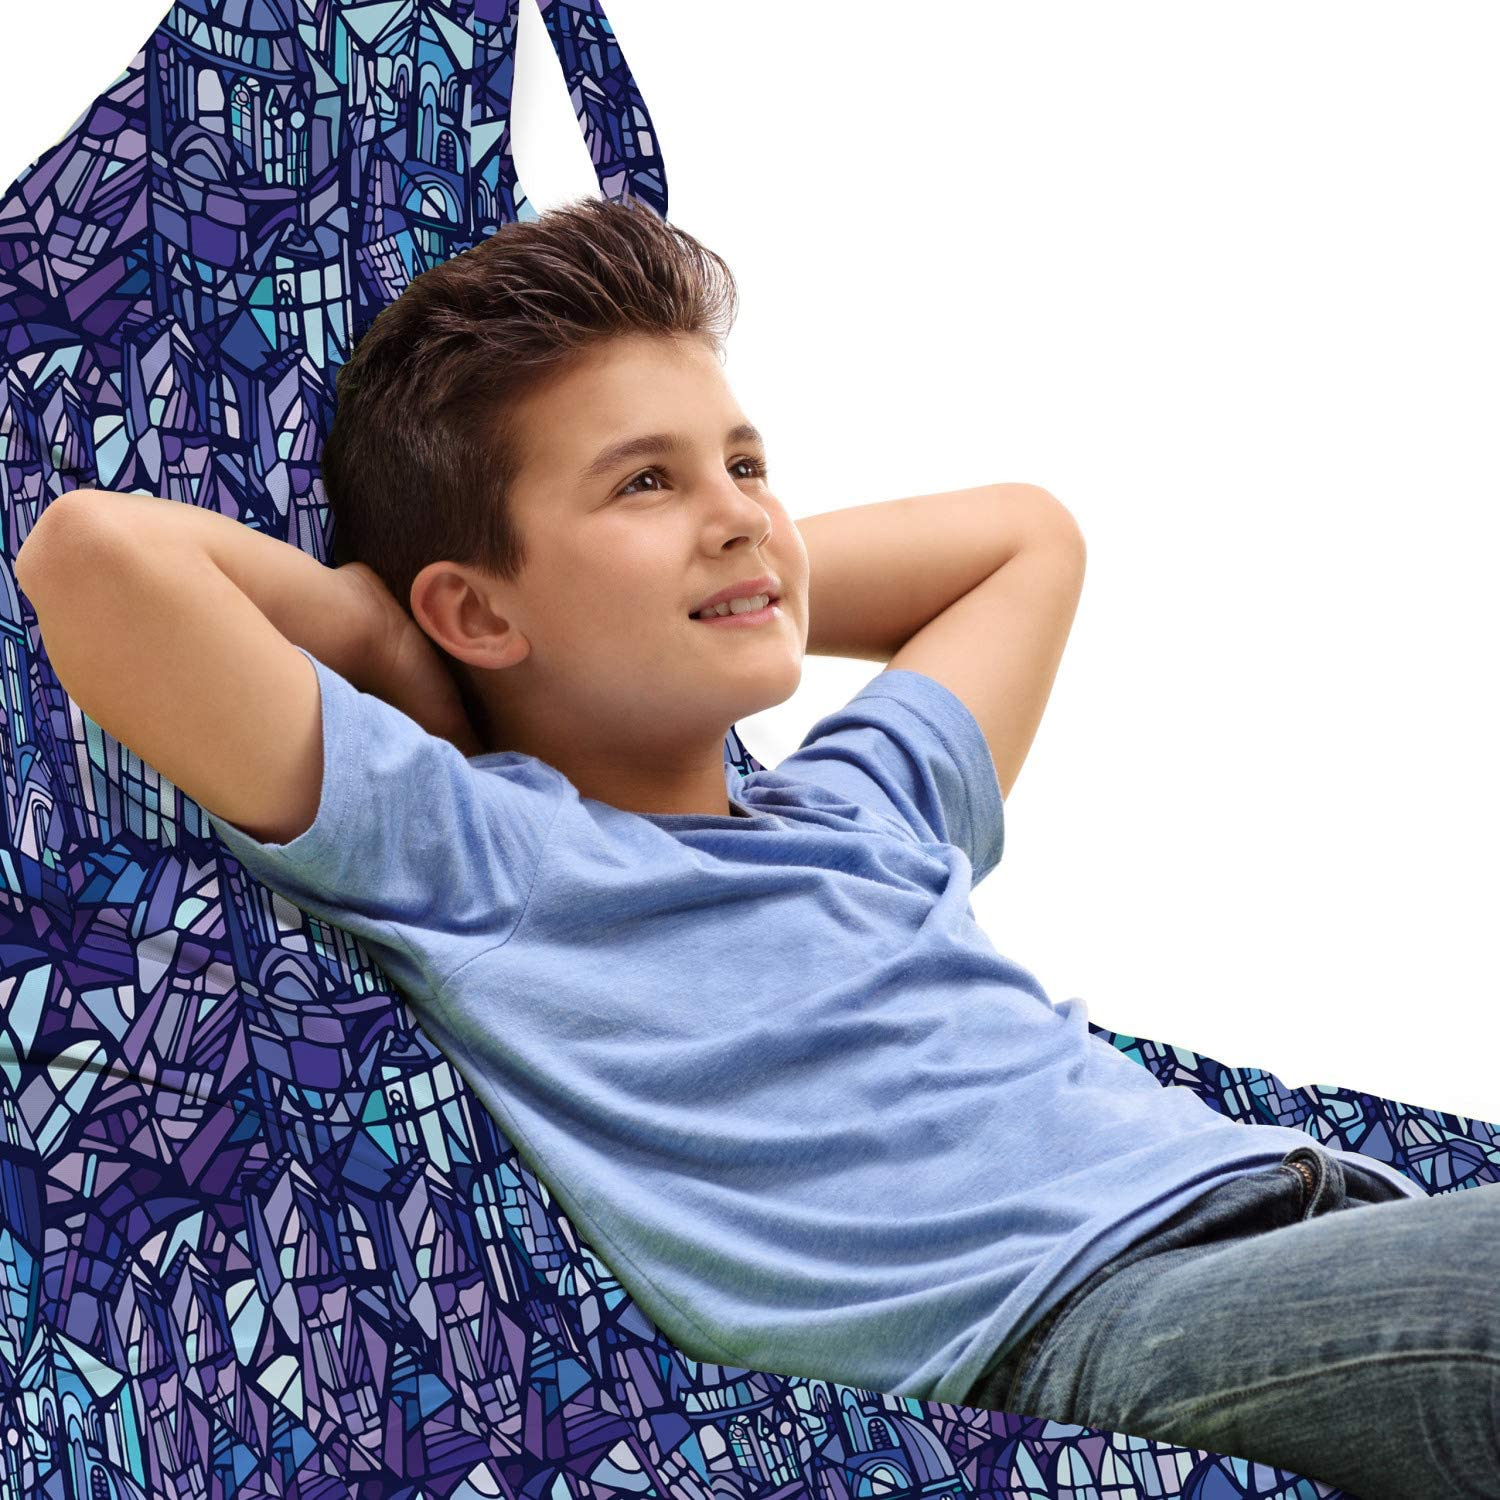 Lunarable Modern Lounger Selling Chair Bag Inspired Glass Cluttered Max 78% OFF Fan